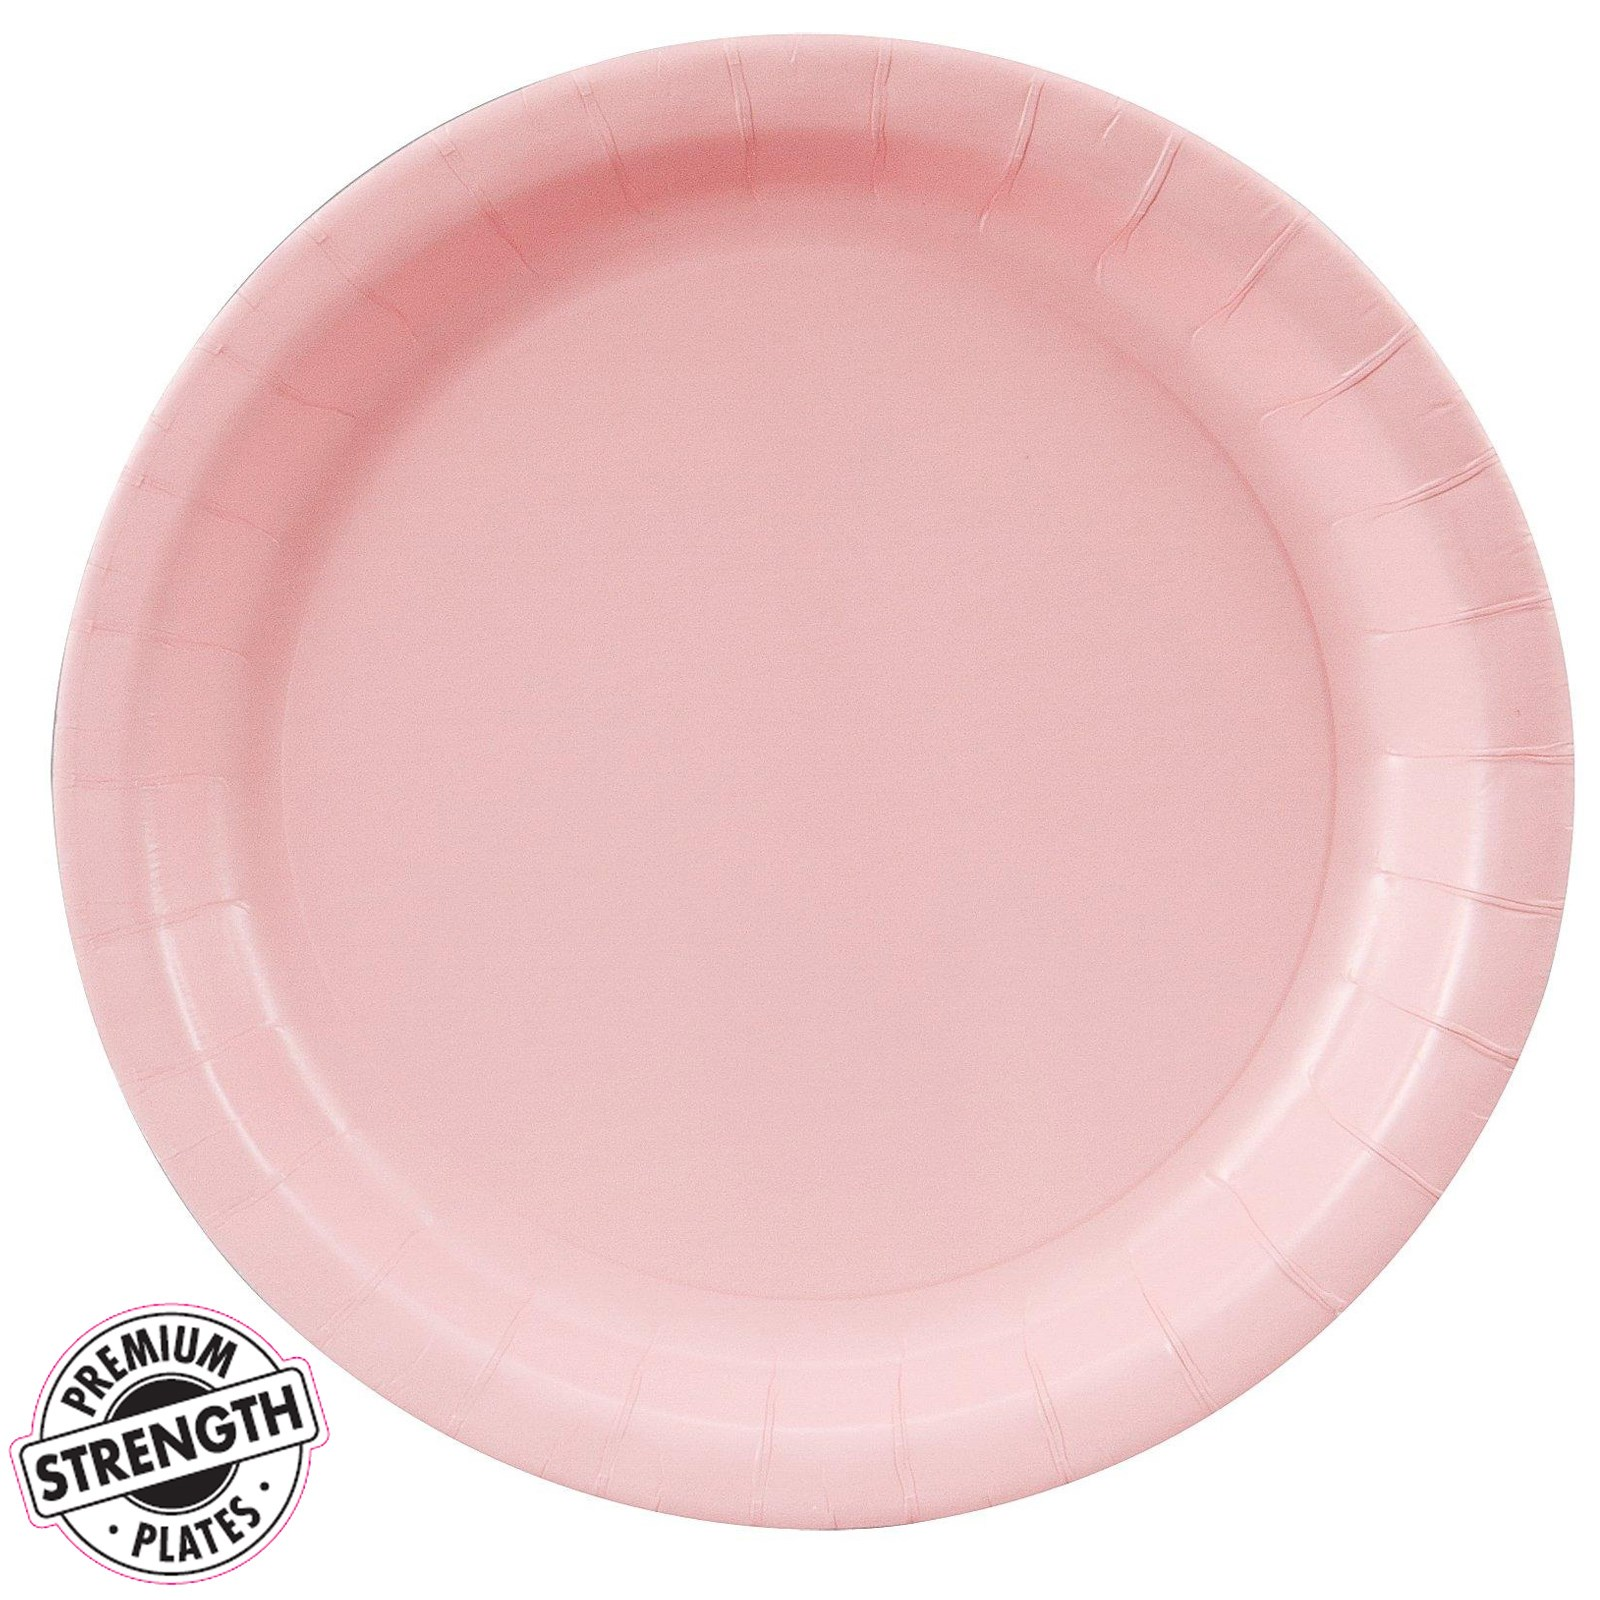 classic pink light pink dinner plates 24 count. Black Bedroom Furniture Sets. Home Design Ideas